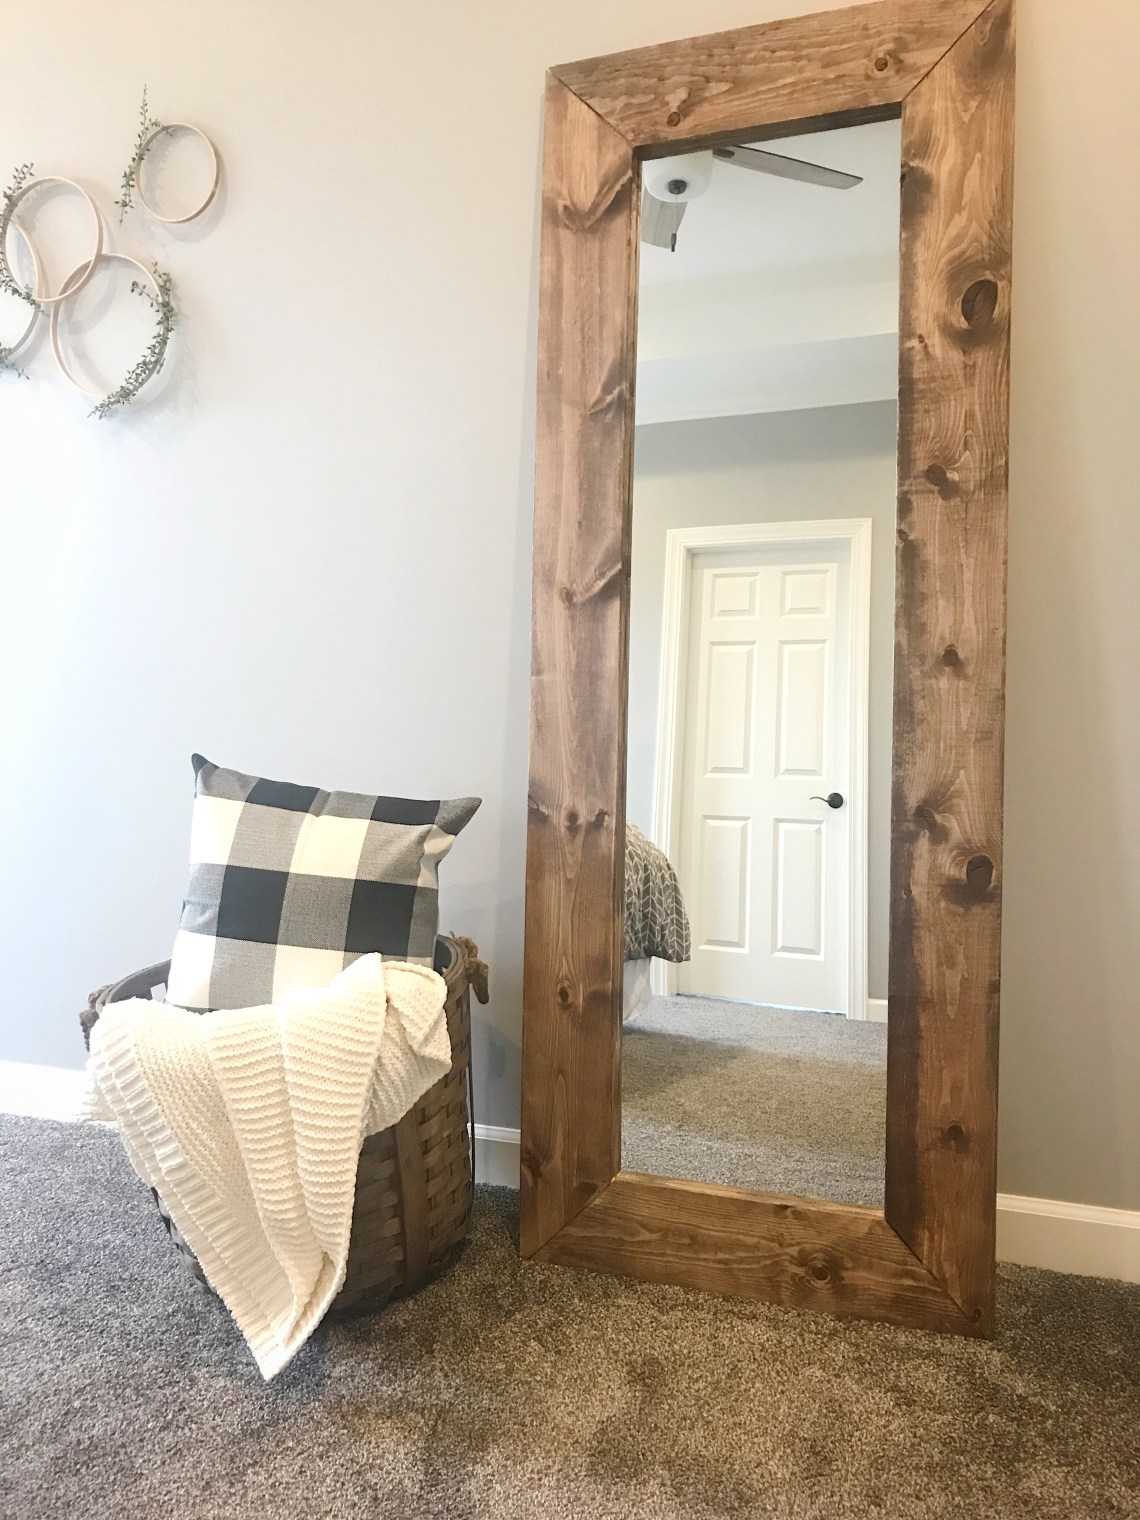 How to Build a DIY Wood Mirror Frame - The Holtz House